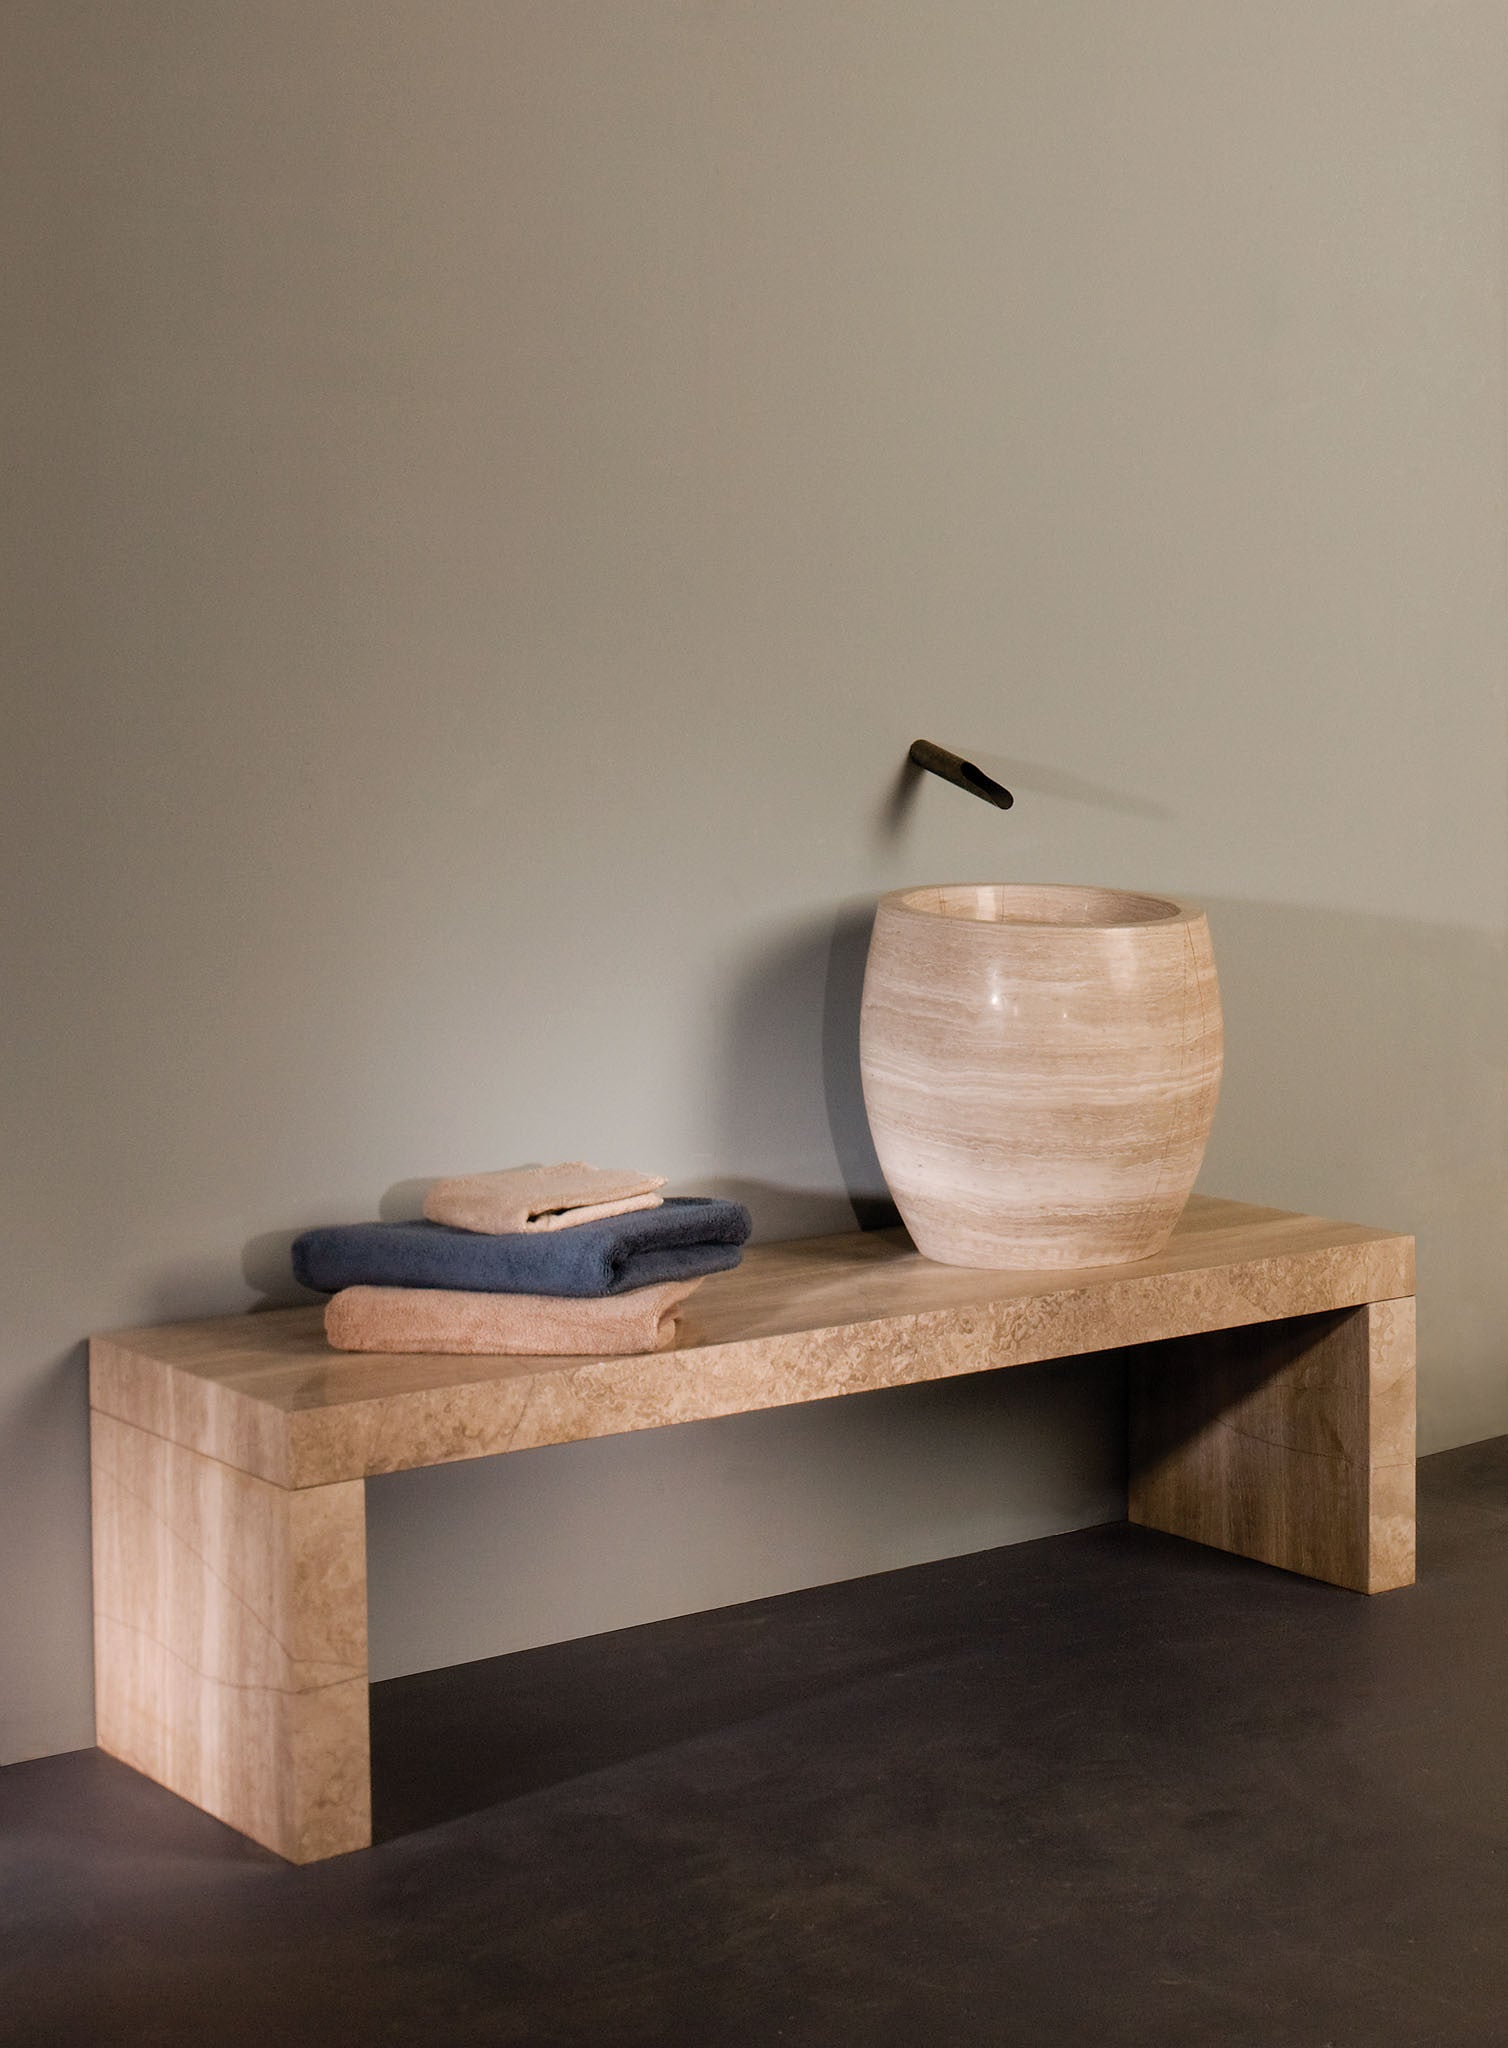 Siena Banco Shower Bench – Stone Forest